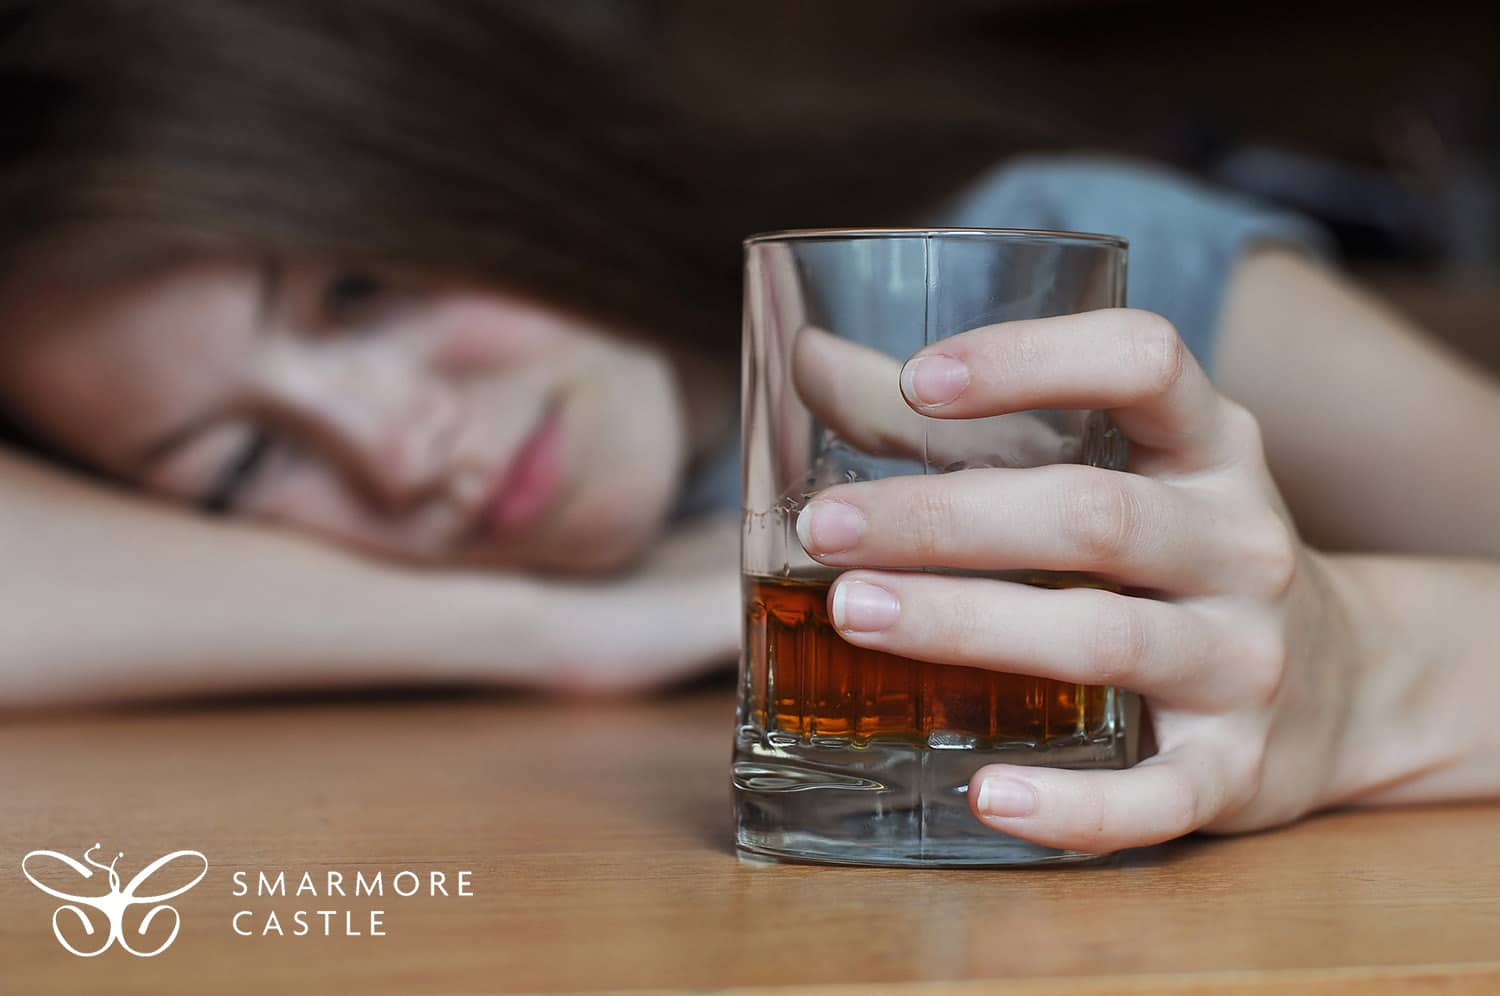 Irish Addiction Services see a major increase in demand since Christmas 2020/1